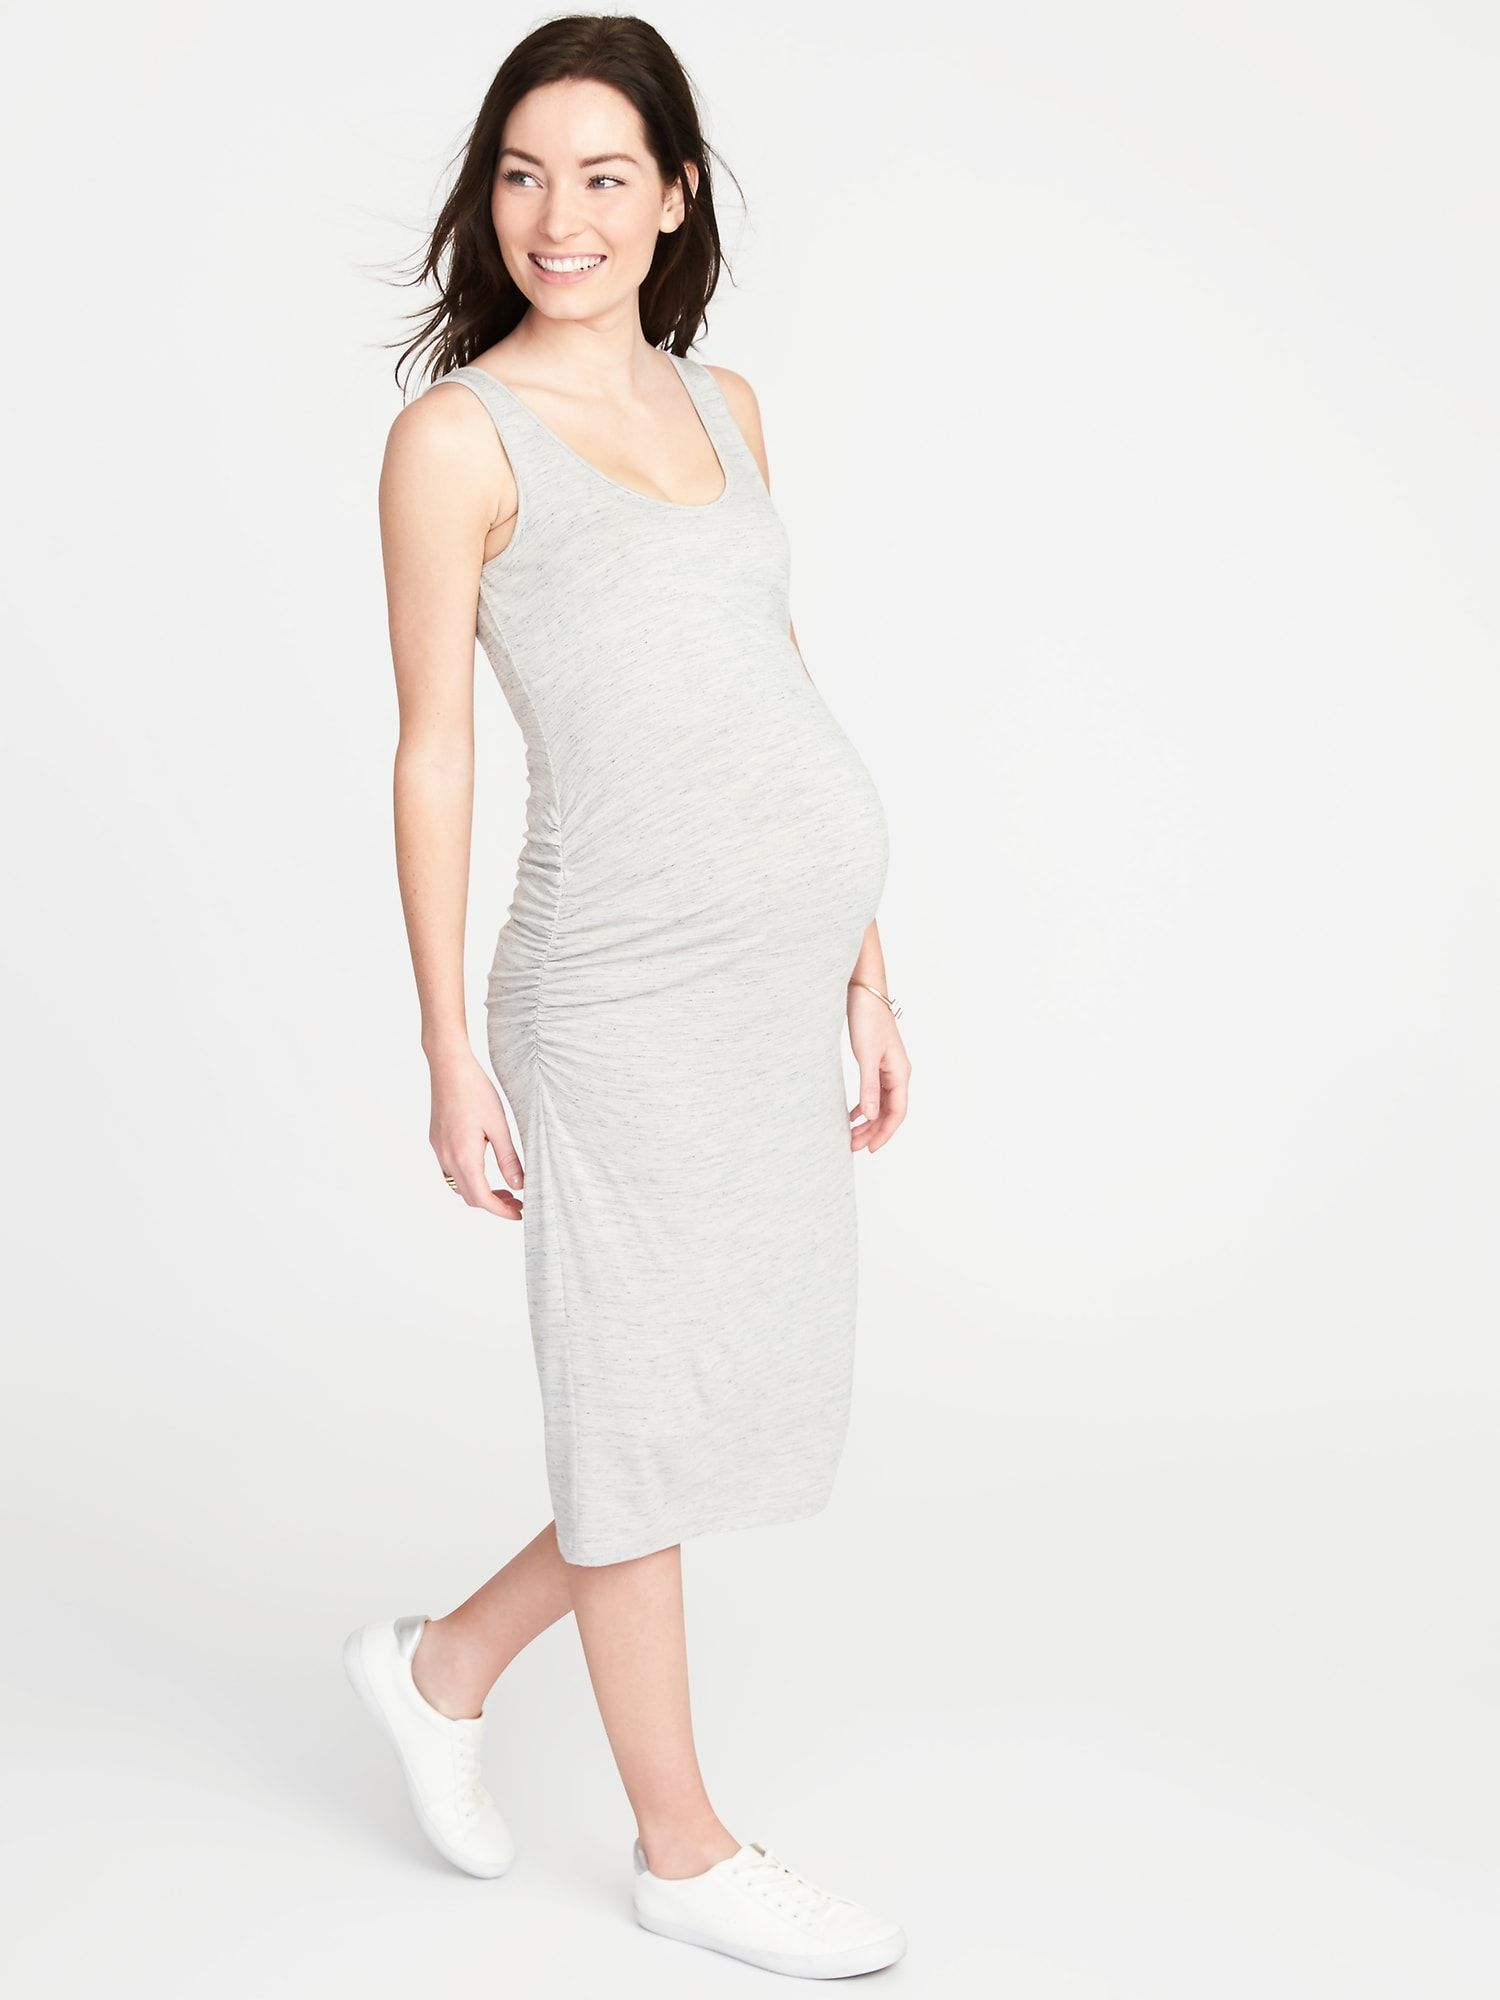 old navy maternity gowns